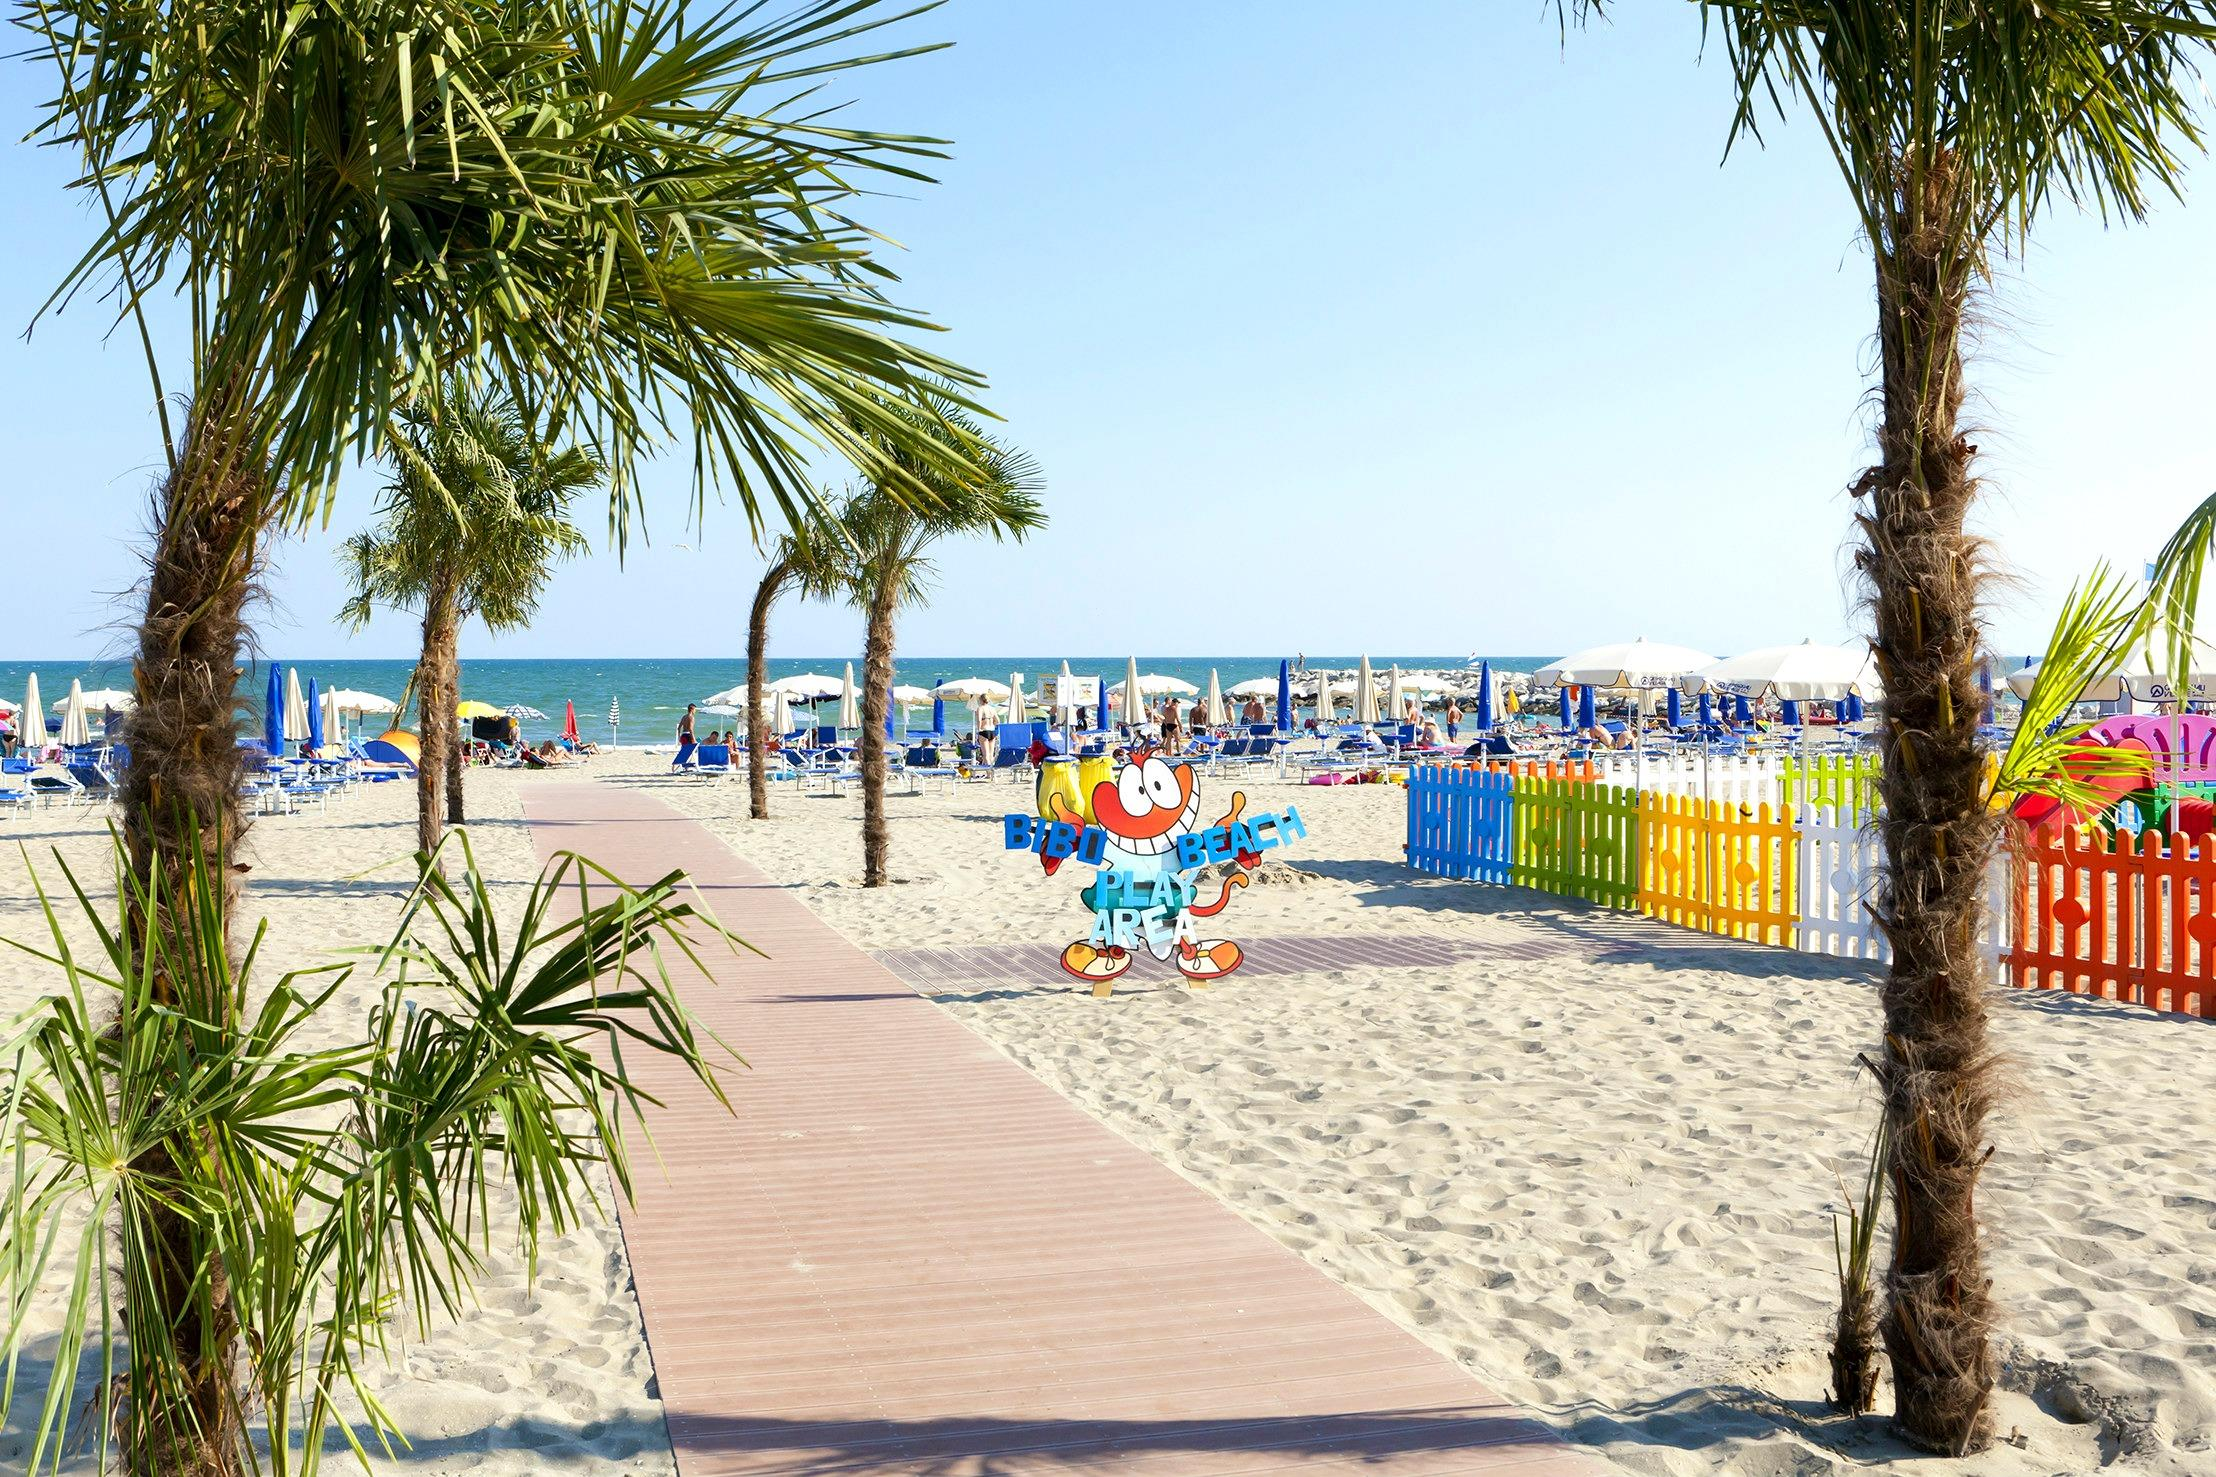 Beaches Ca'Pasquali Village - CAVALLINO-TREPORTI (VE)